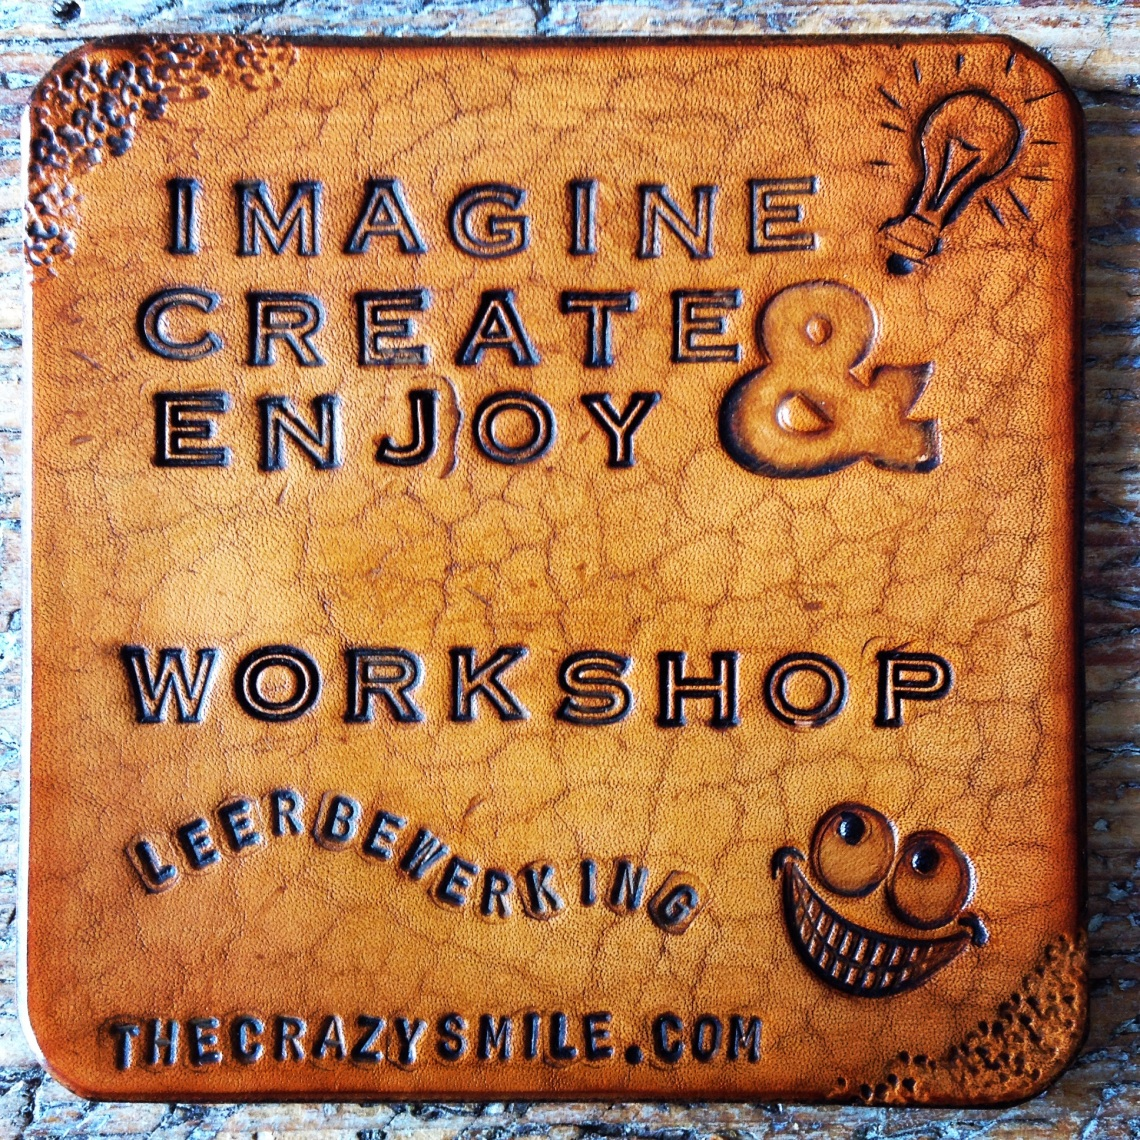 Workshop leerbewerking door TheCrazySmile